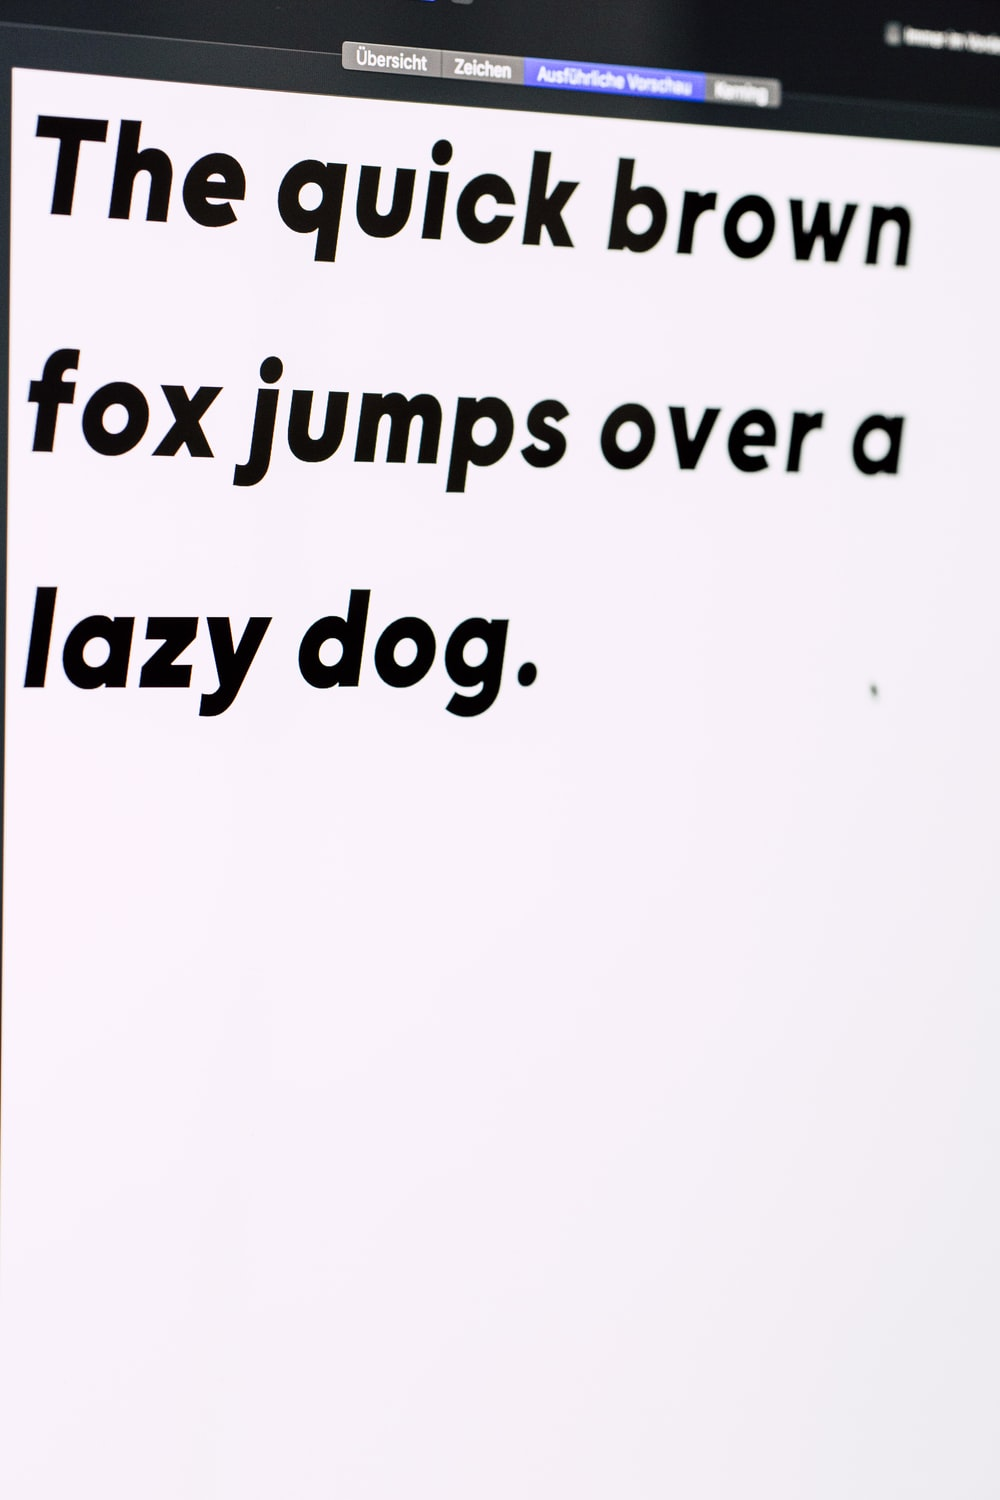 the quick brown fox jumps over a lazy dog text on white background